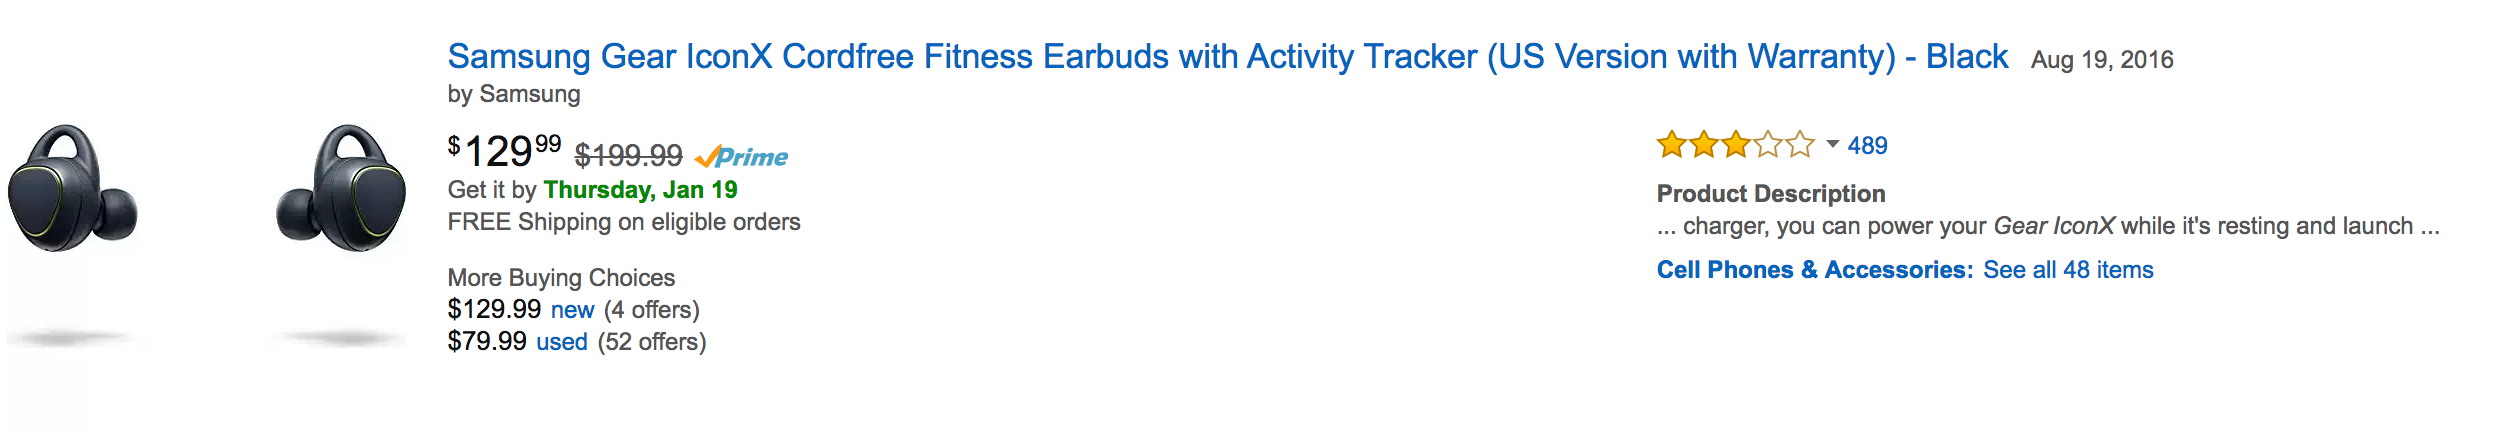 samsung-gear-iconx-cordfree-fitness-earbuds-with-activity-tracker-4